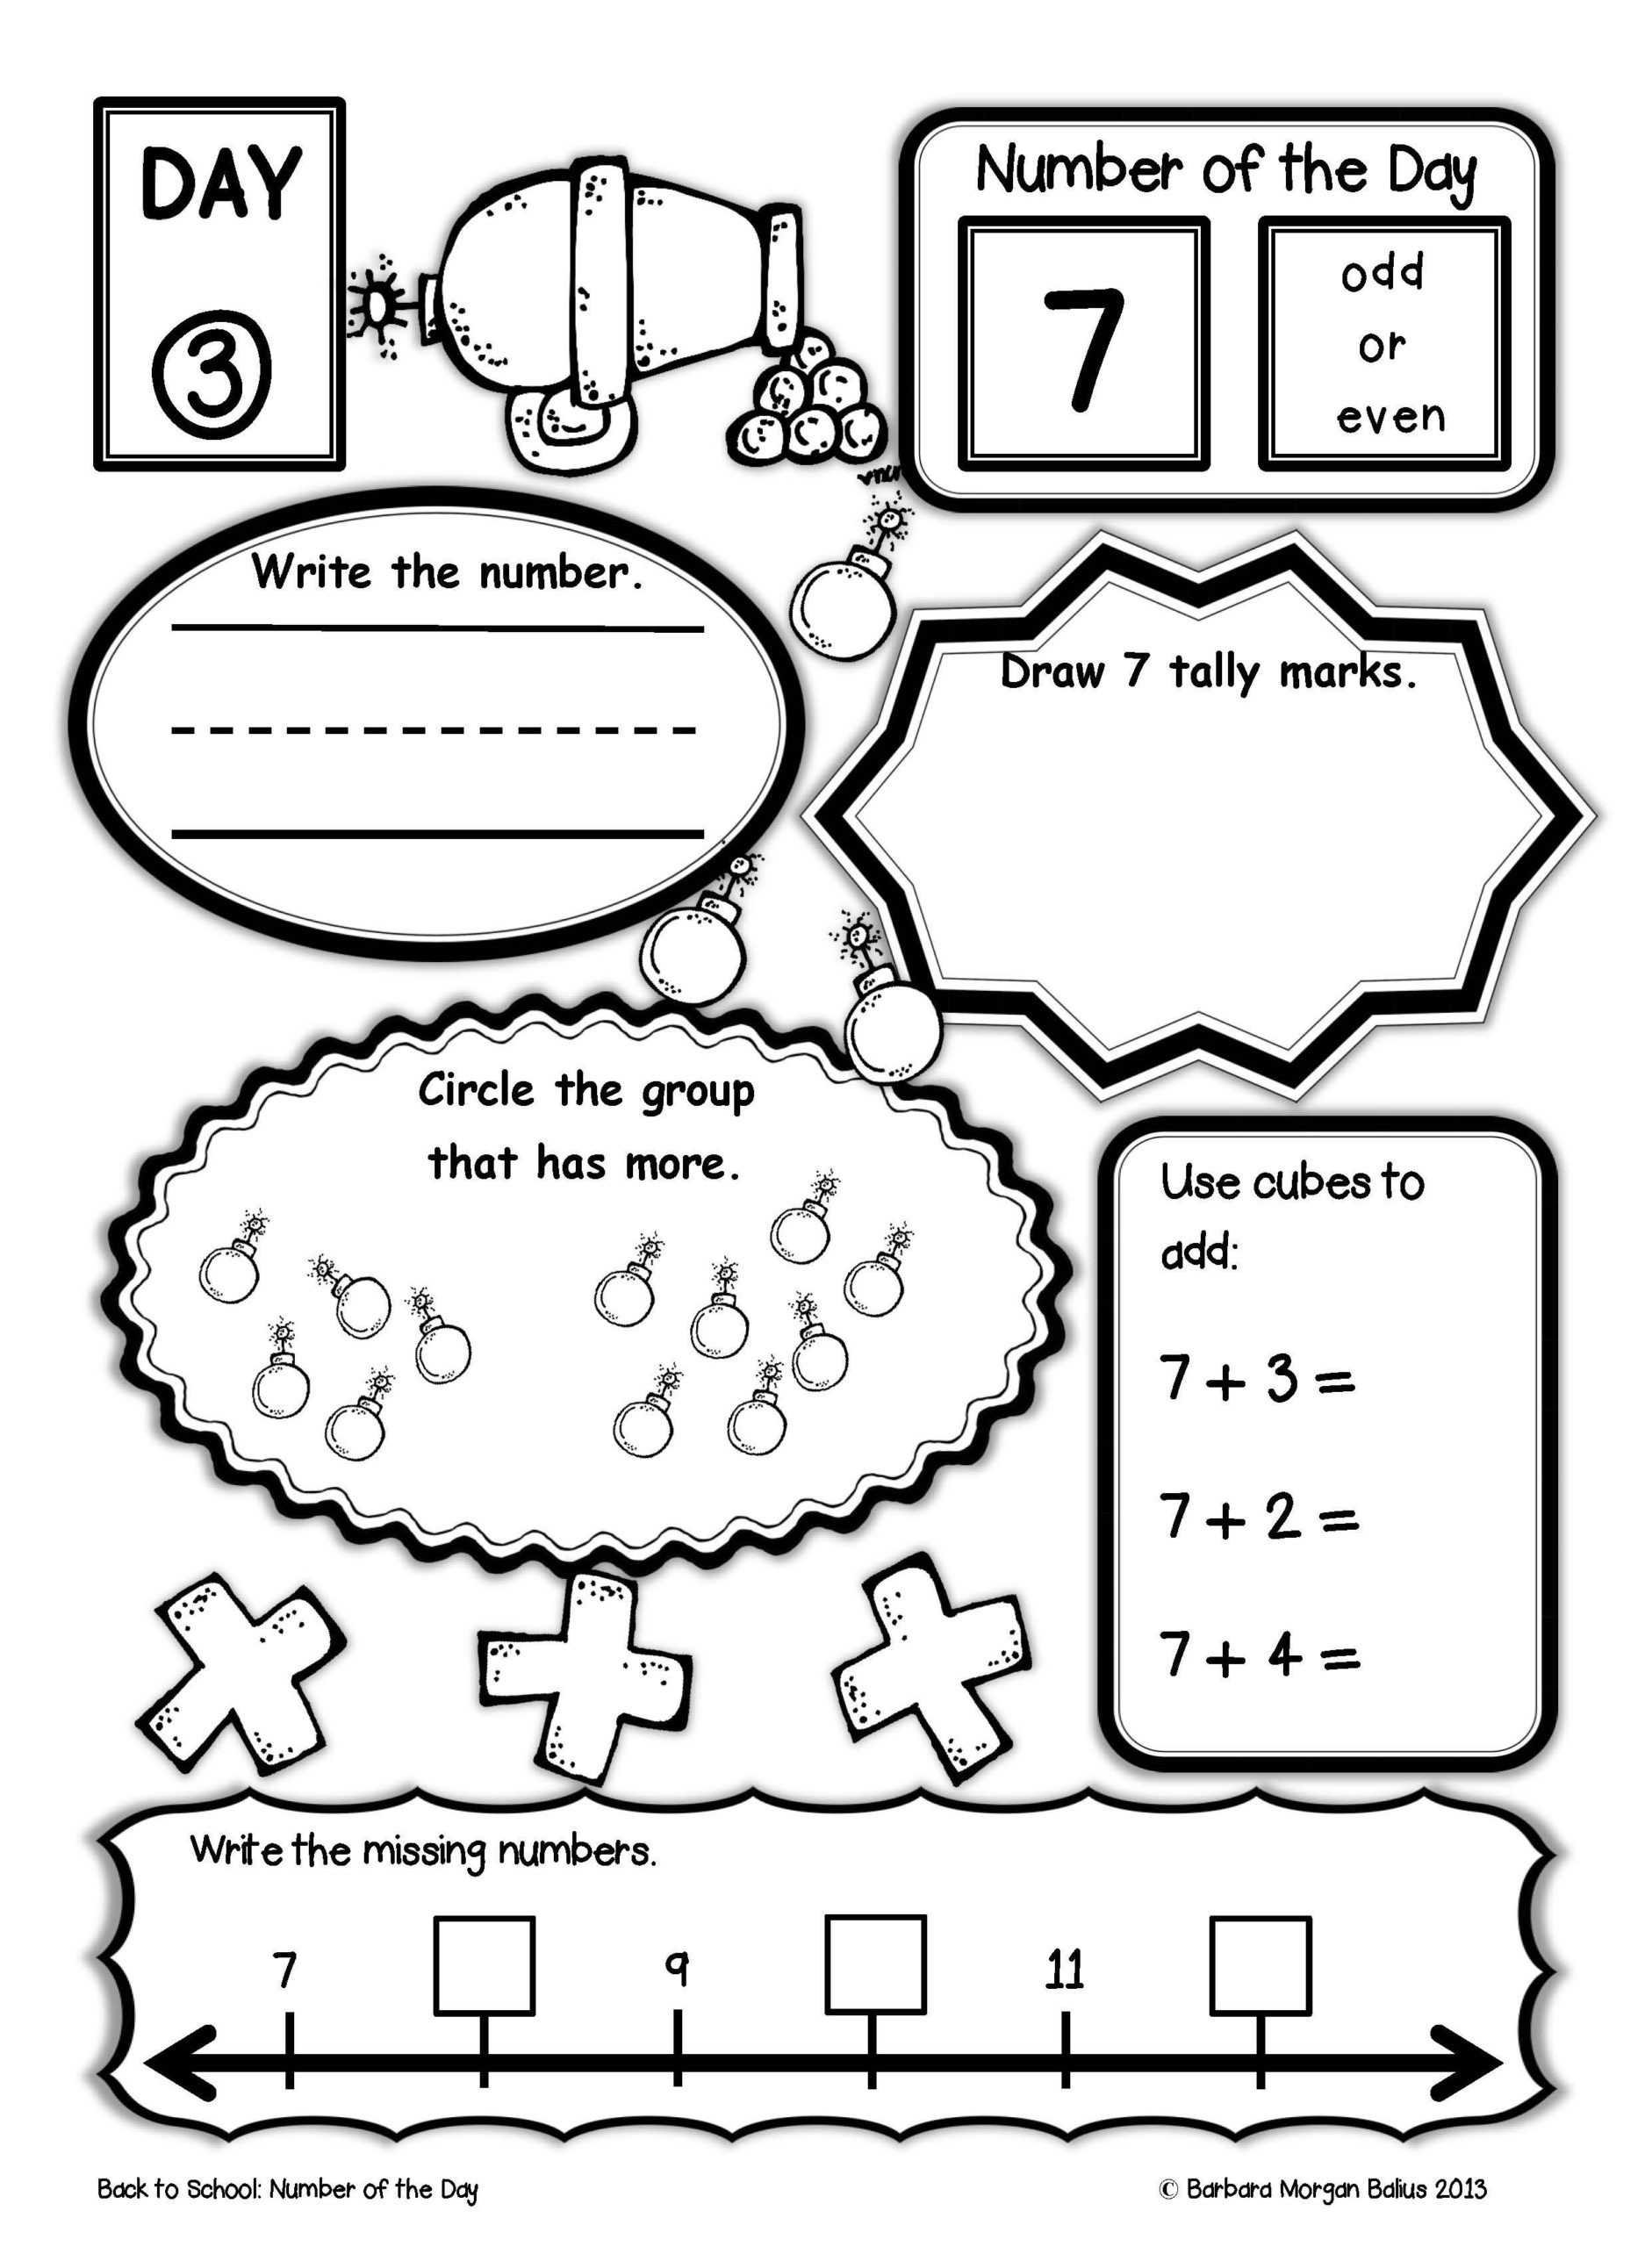 First Grade History Worksheets Math for 1st Graders Free Grade 1 Math Back to School